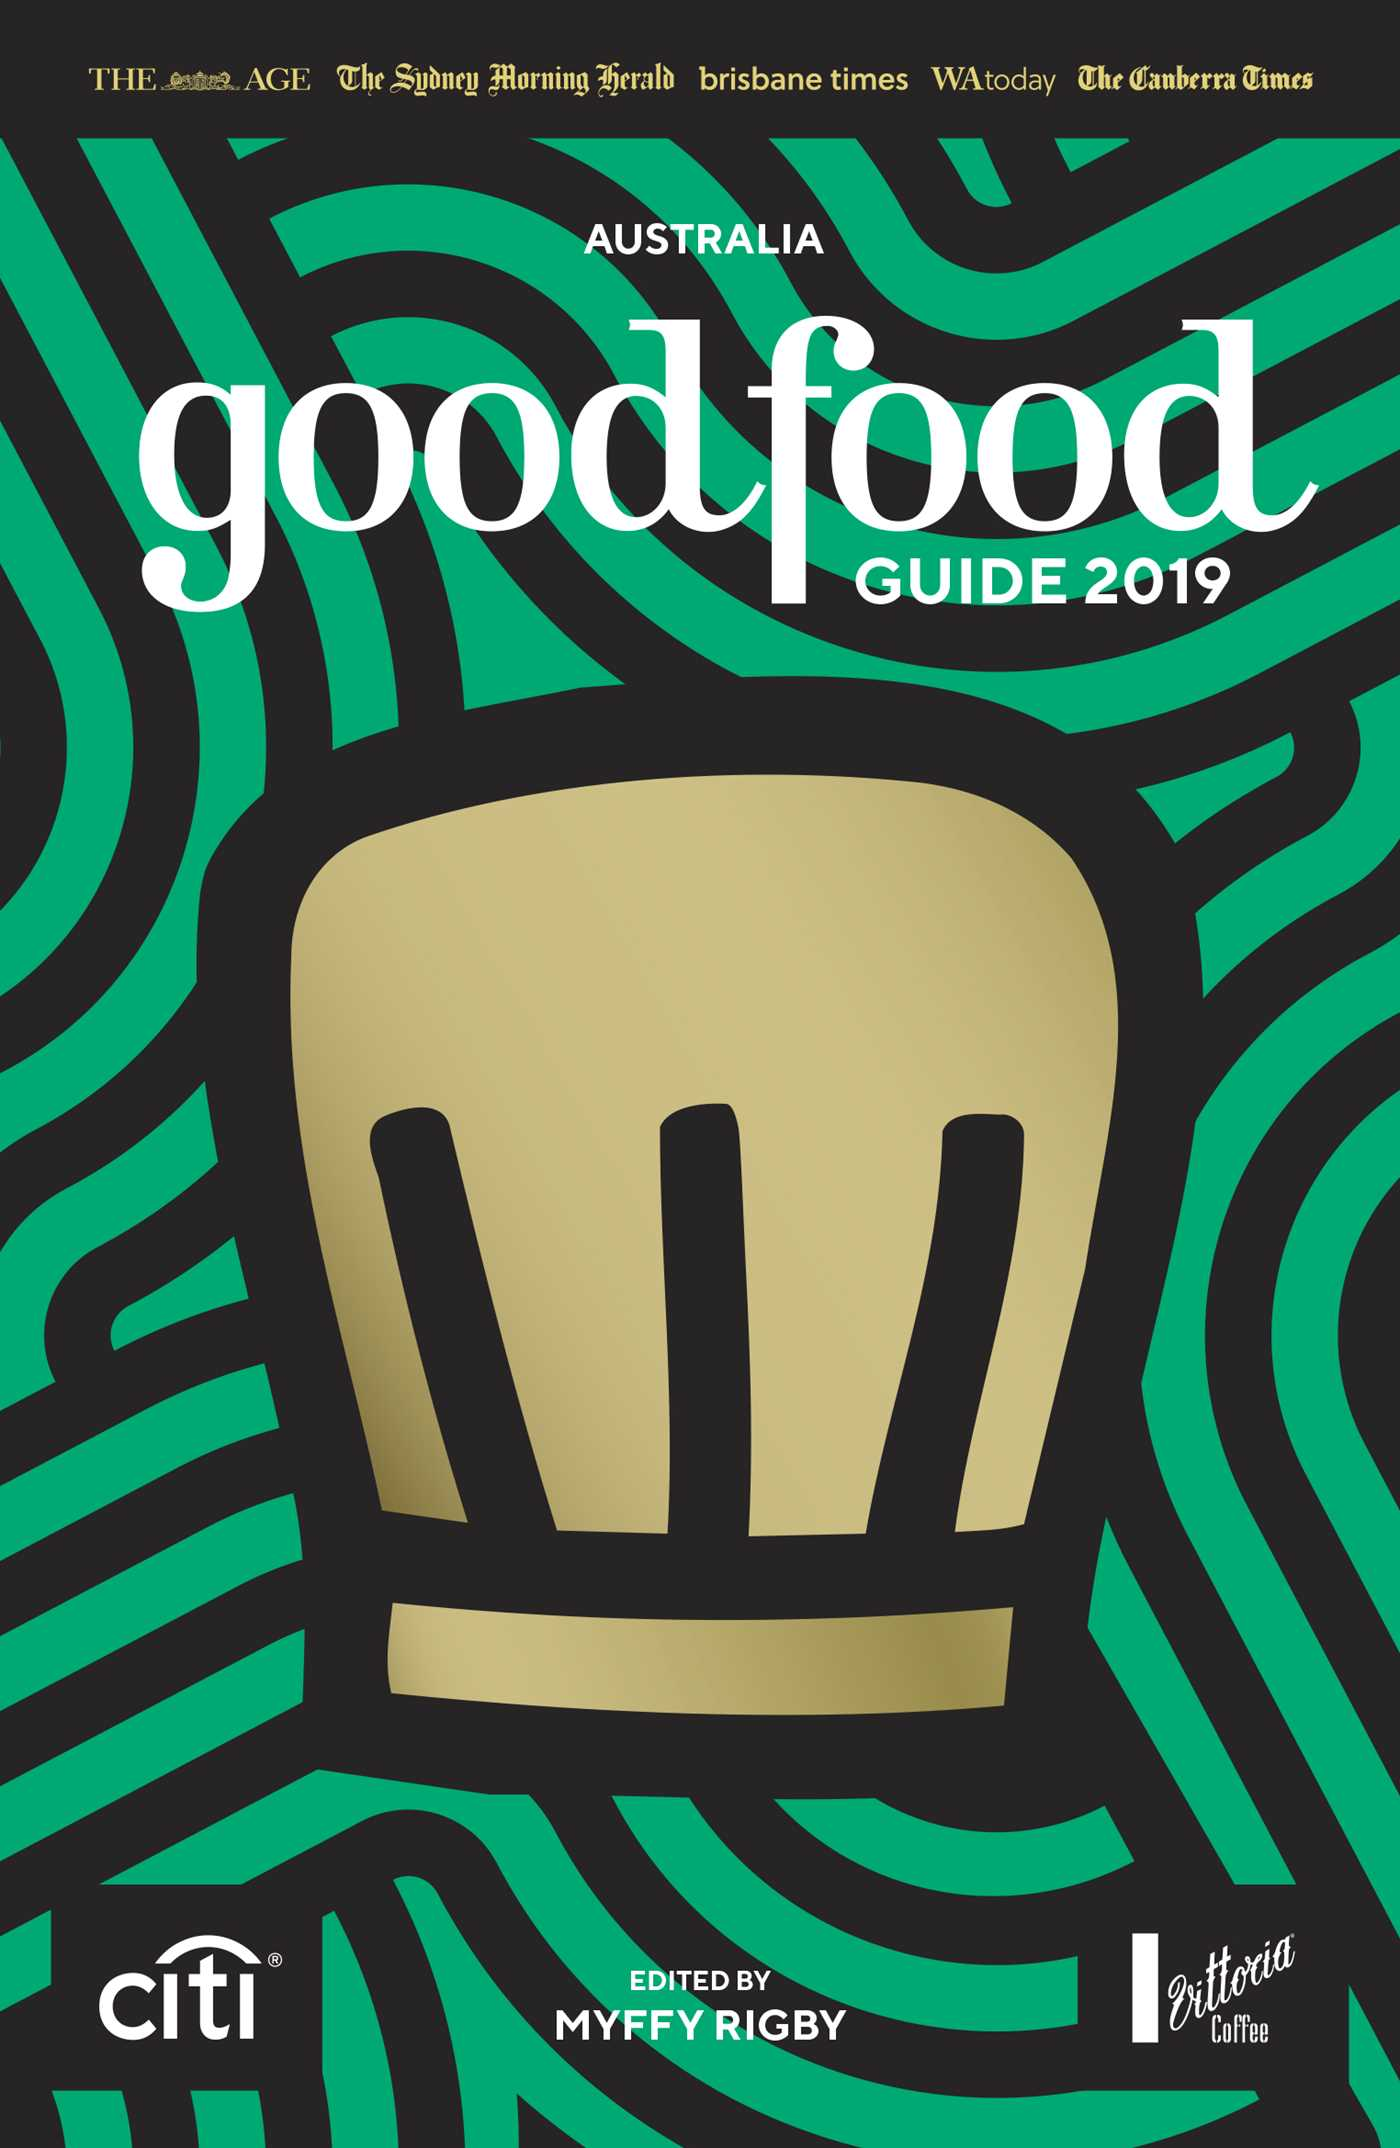 The age good food guide 2018 by myffy rigby, roslyn grundy.